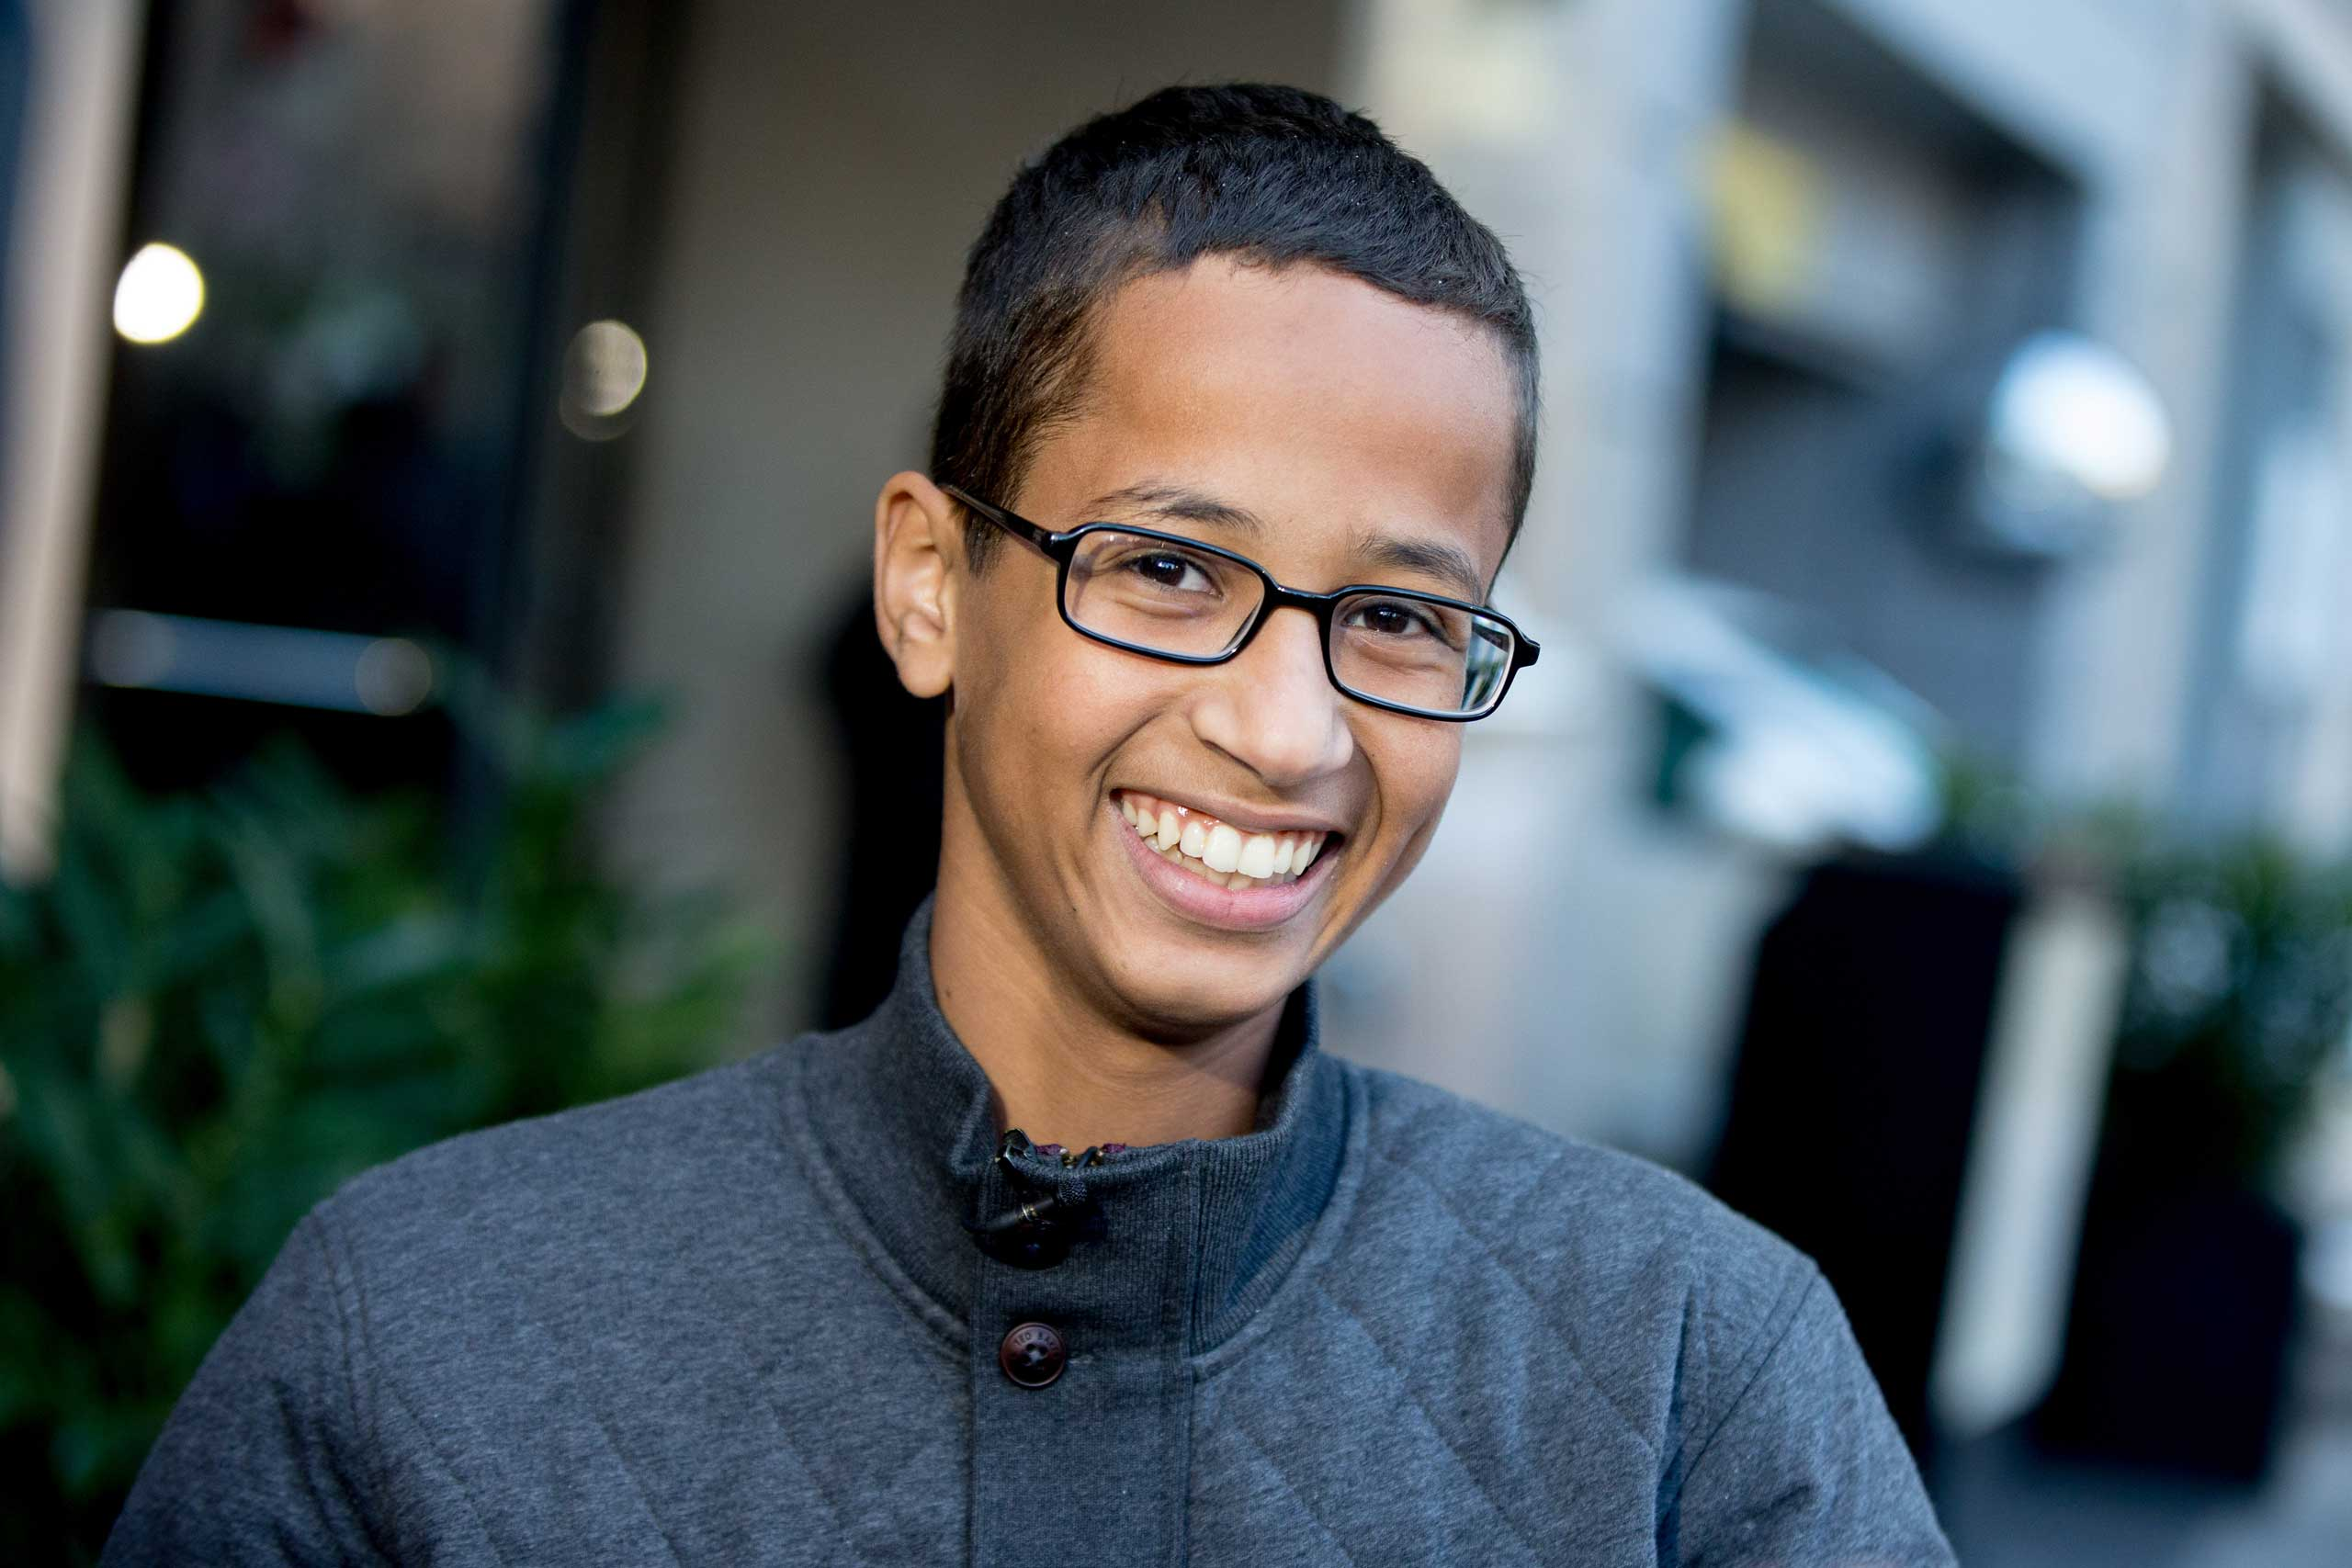 Ahmed Mohamed, the 14-year-old who was arrested at MacArthur High School in Irving, Texas for allegedly bringing a hoax bomb to school, speaks during an interview with the Associated Press, in Washington, Oct. 19, 2015.